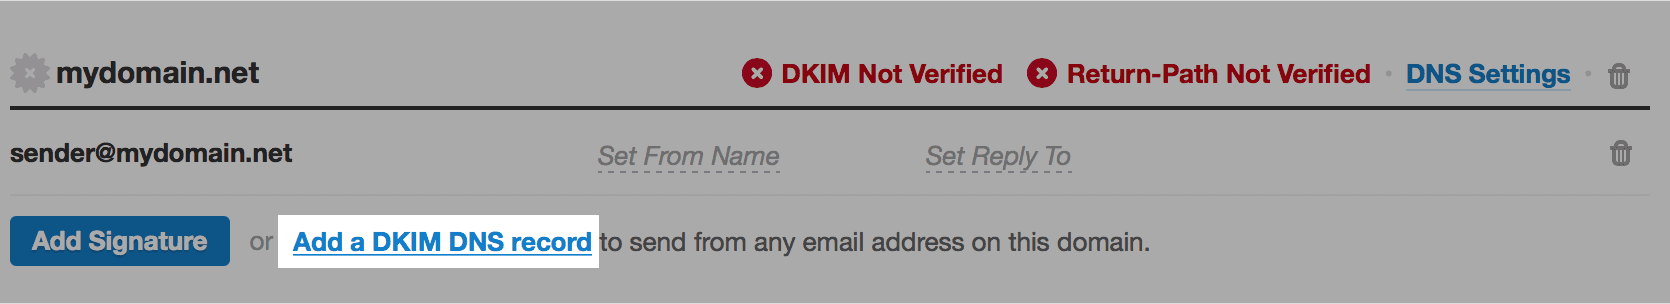 Link for adding a DKIM DNS record